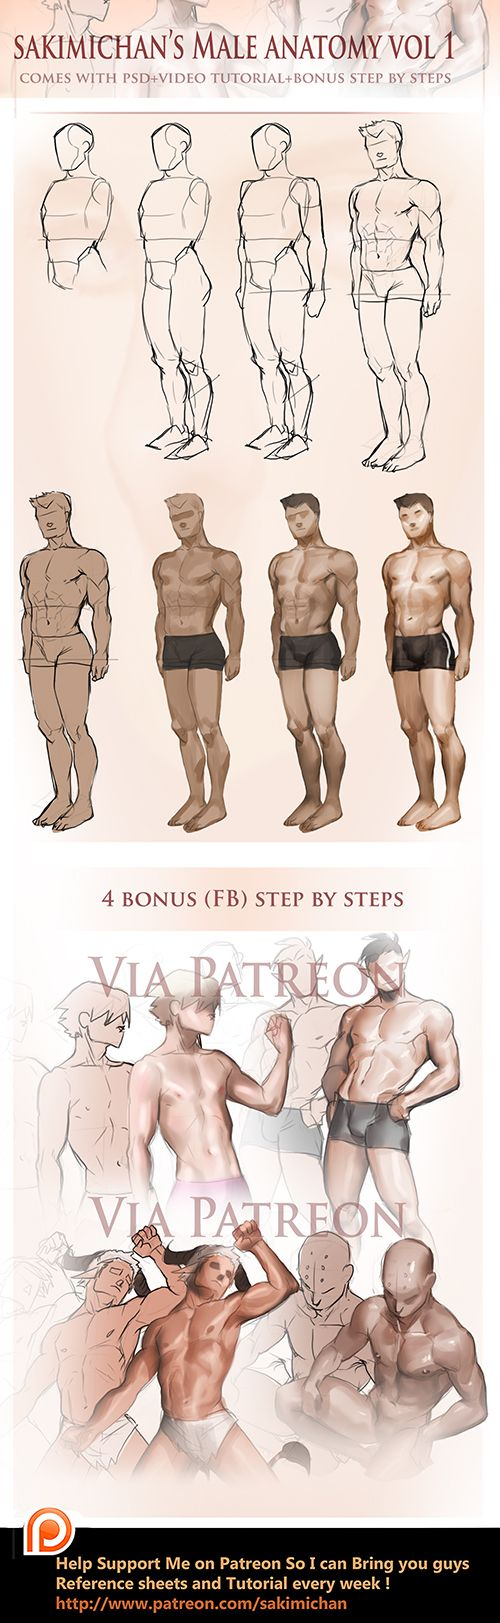 Male Fullbody step by step tutorial by sakimichan on DeviantArt